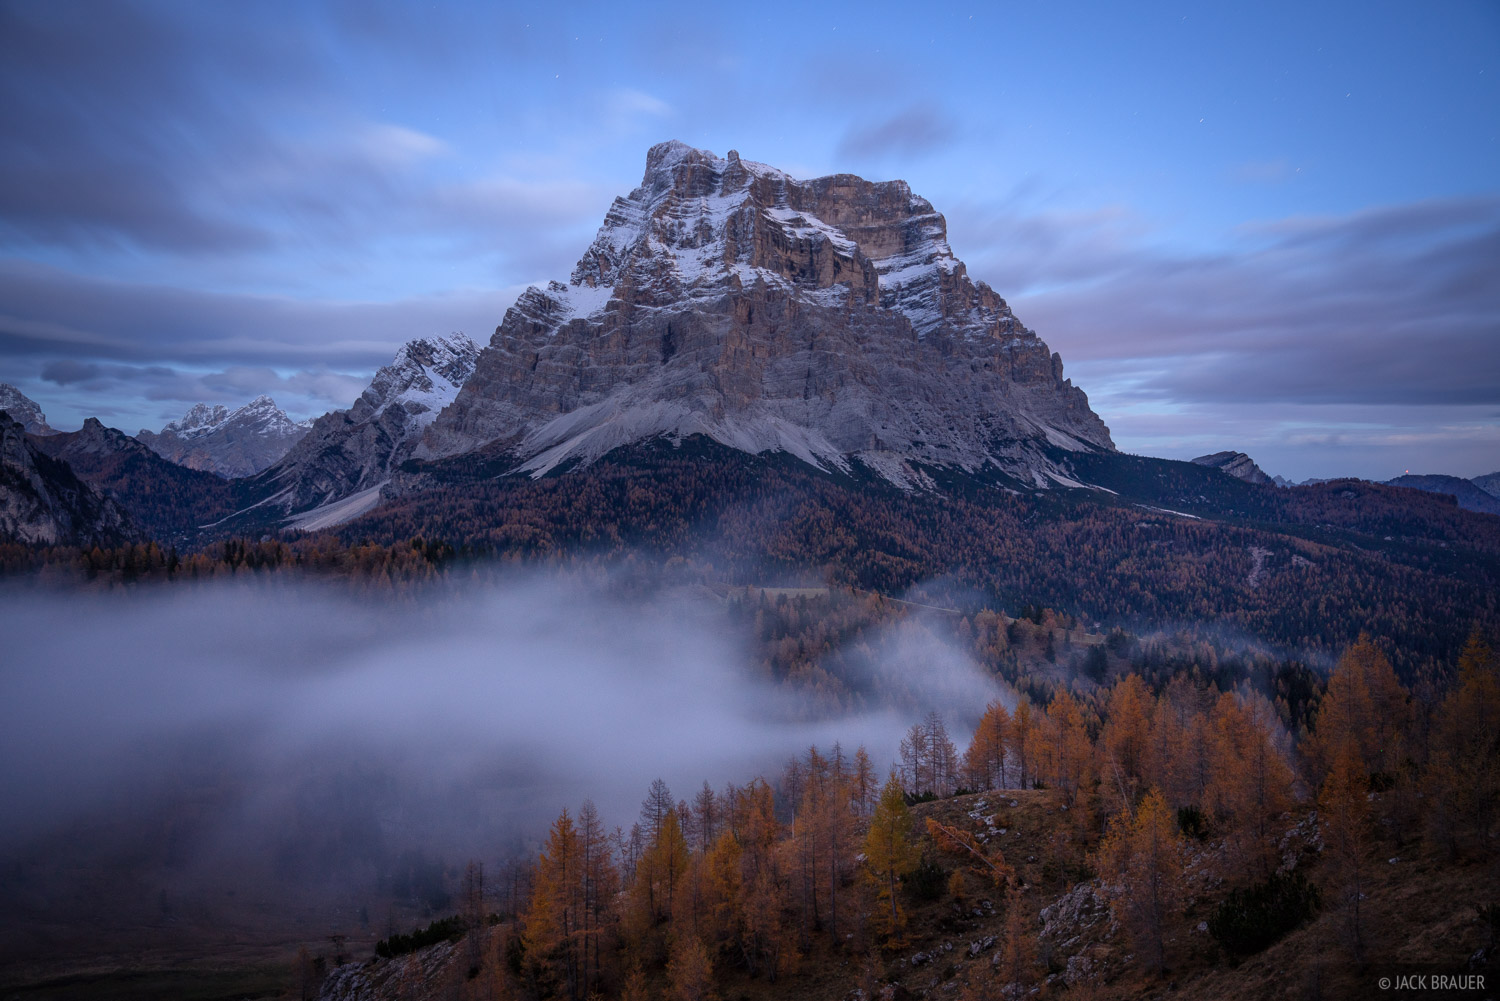 Dolomites, Italy, Monte Pelmo, November, Alps, photo